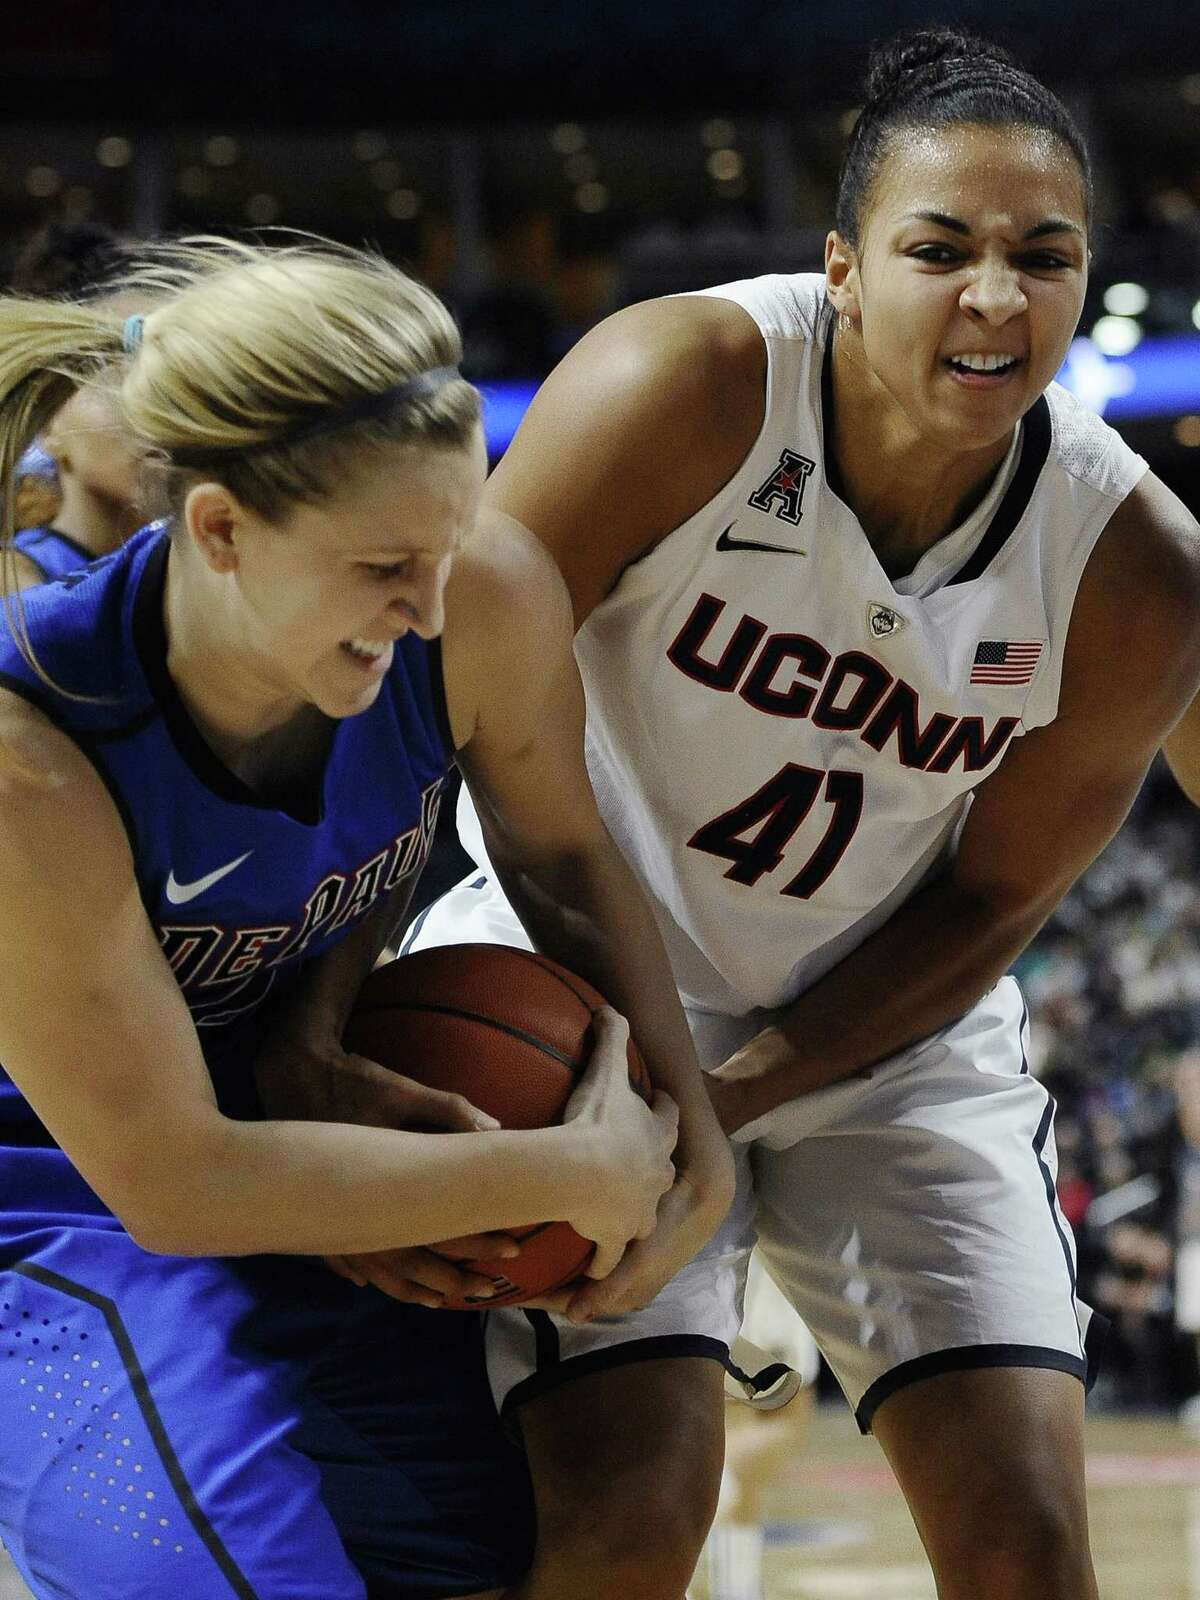 DePaulís Brooke Schulte, left, and Connecticutís Kiah Stokes, fight for control of the ball during the first half of an NCAA college basketball game, Friday, Dec. 19, 2014, in Bridgeport, Conn. (AP Photo/Jessica Hill)